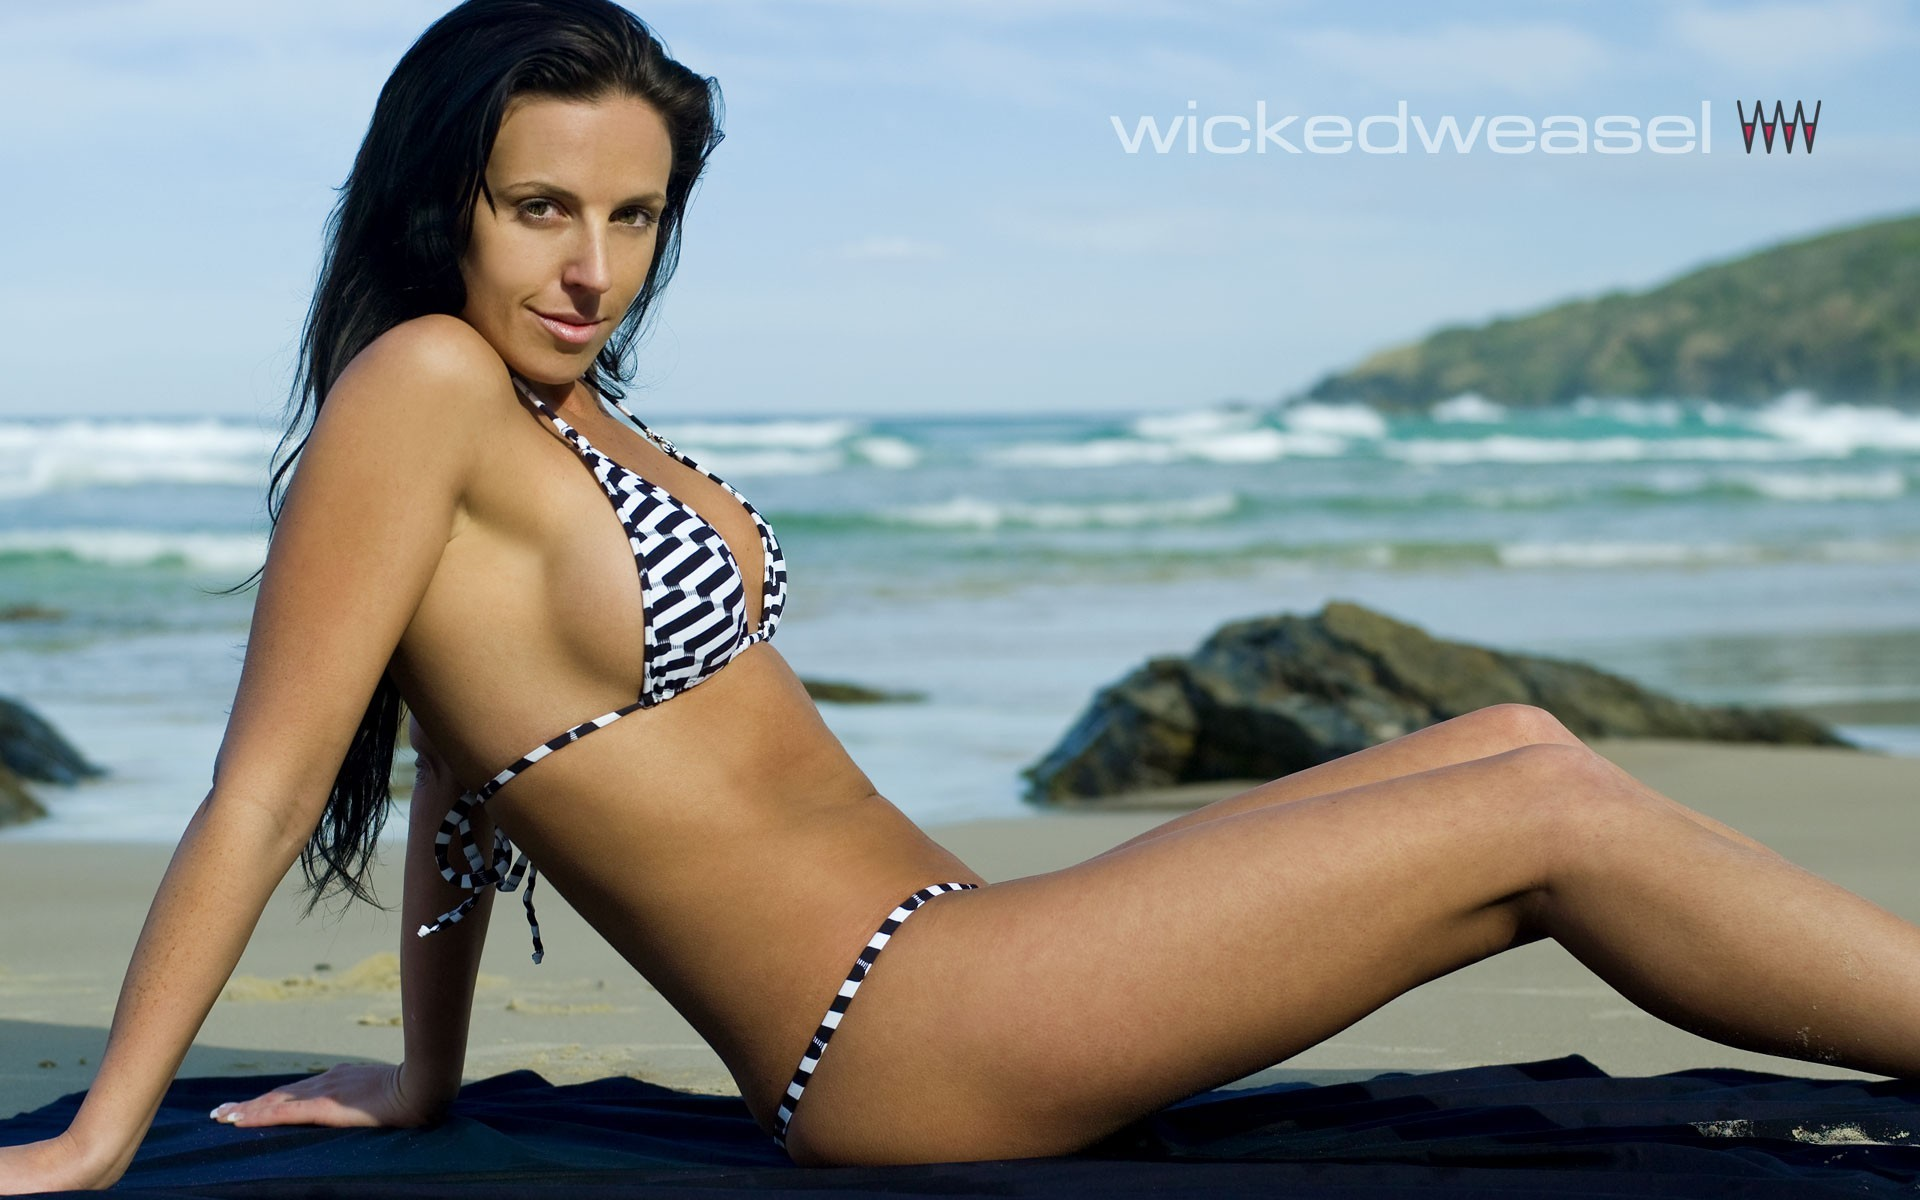 woman bikini Wicked Weasel